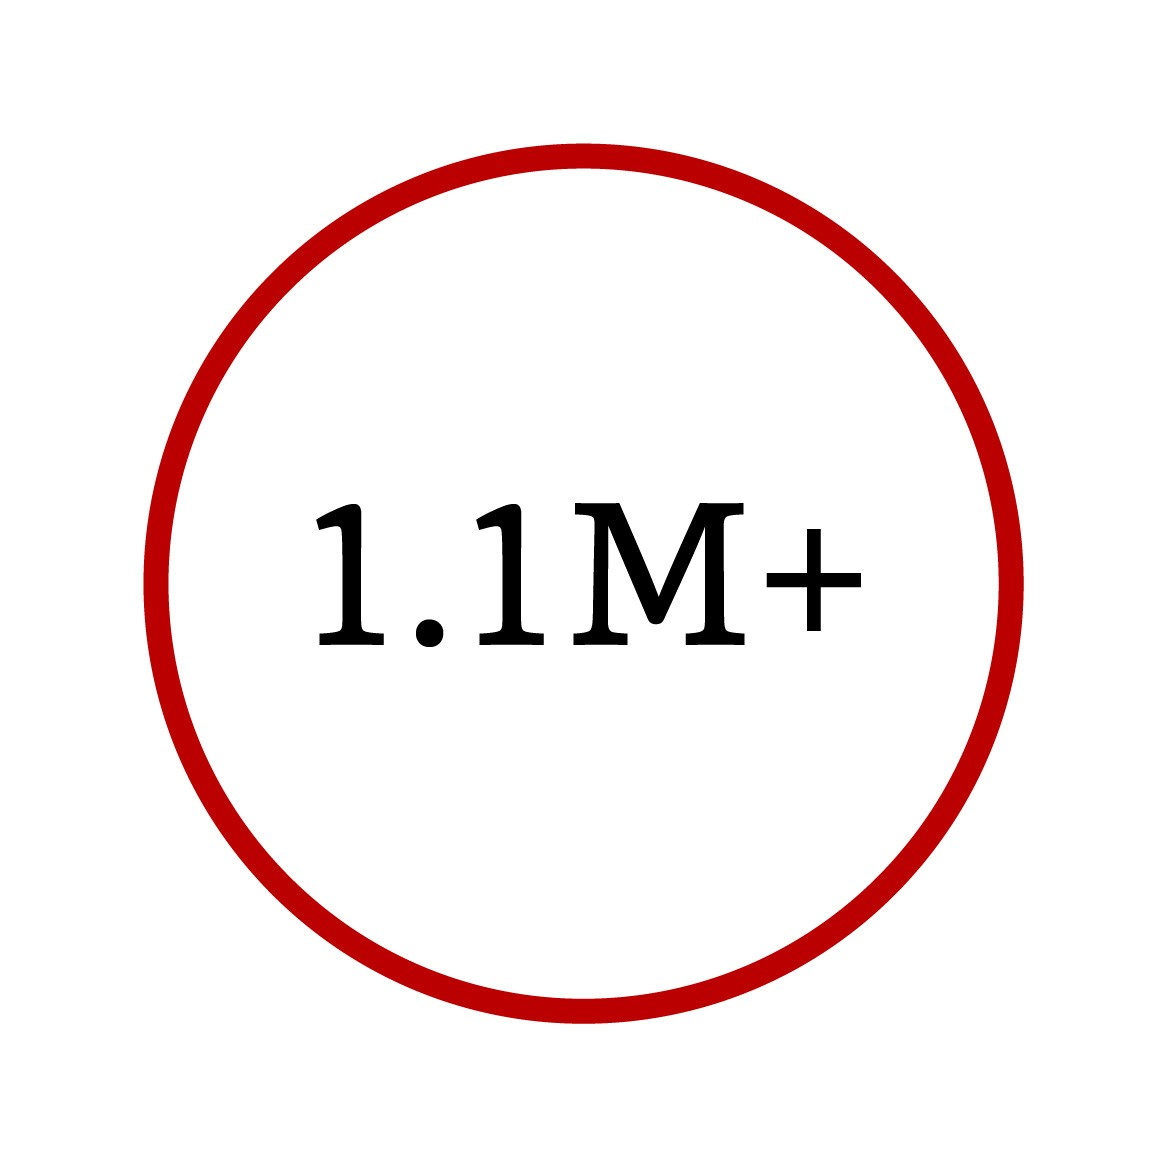 graphic of circle with text inside, one-point-one million plus